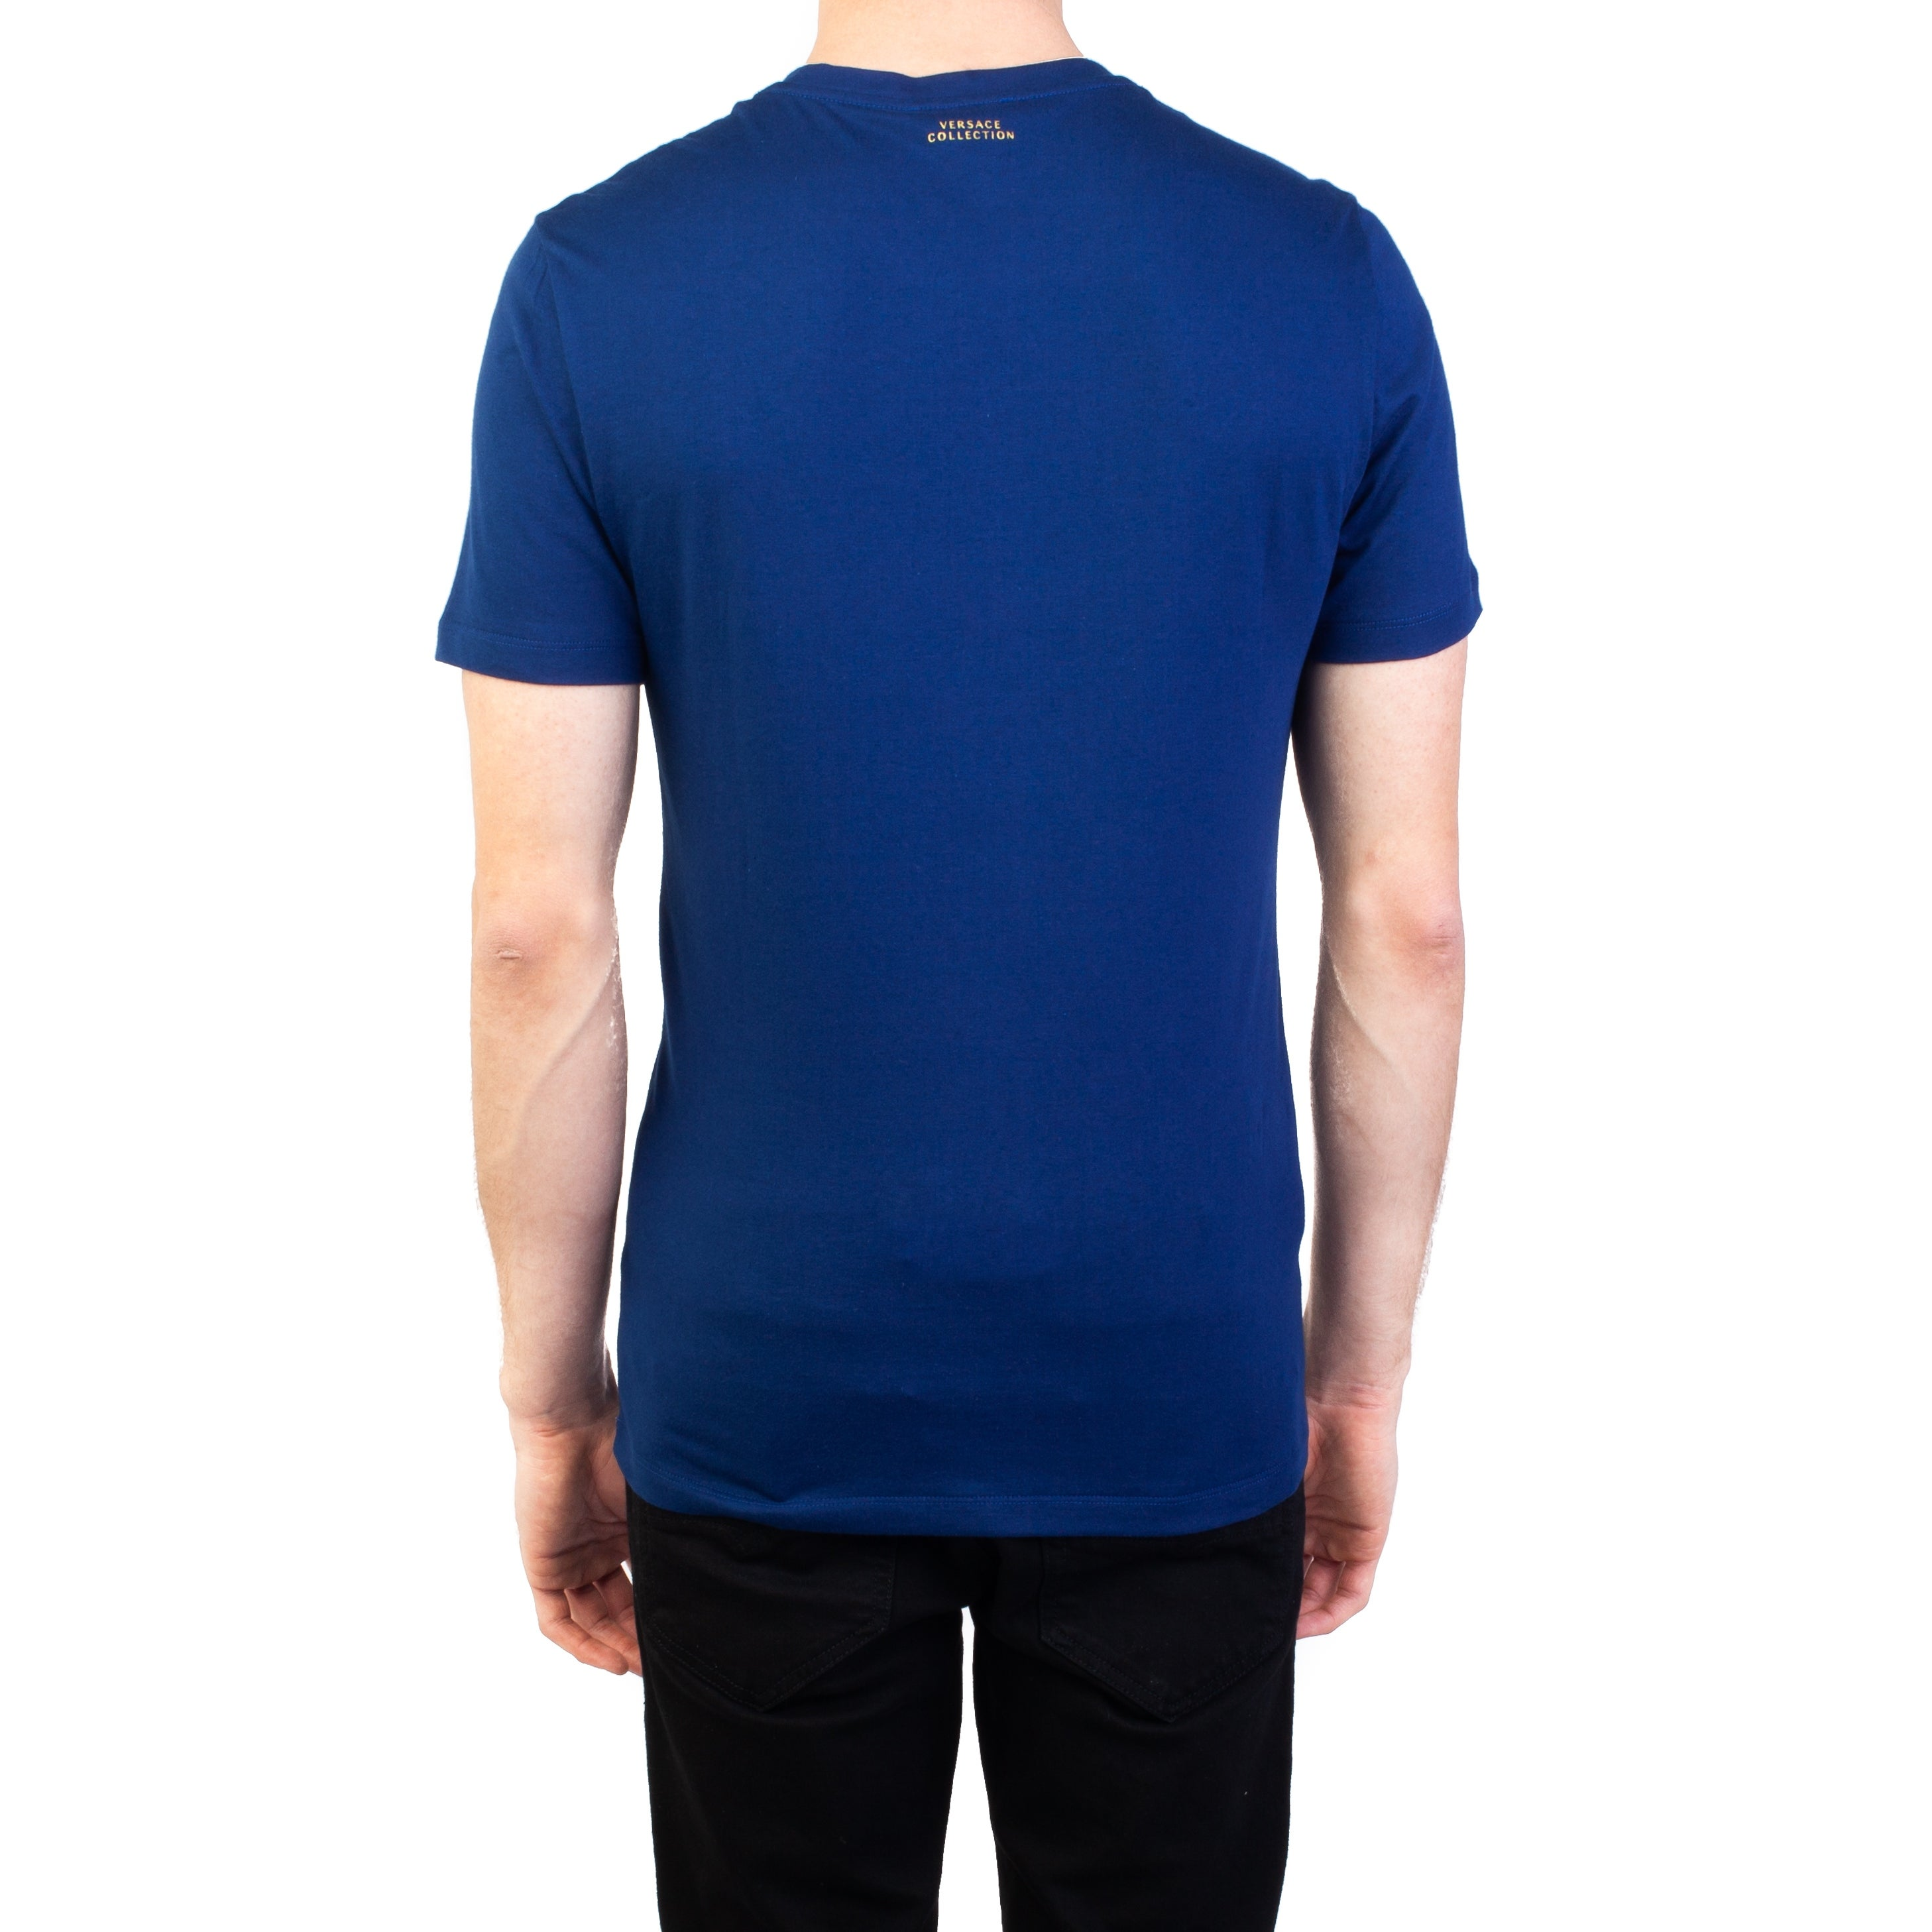 095a9812f Shop Versace Collection Men's Cotton Angular Medusa Graphic T-Shirt Blue  Gold - Free Shipping Today - Overstock - 27675699